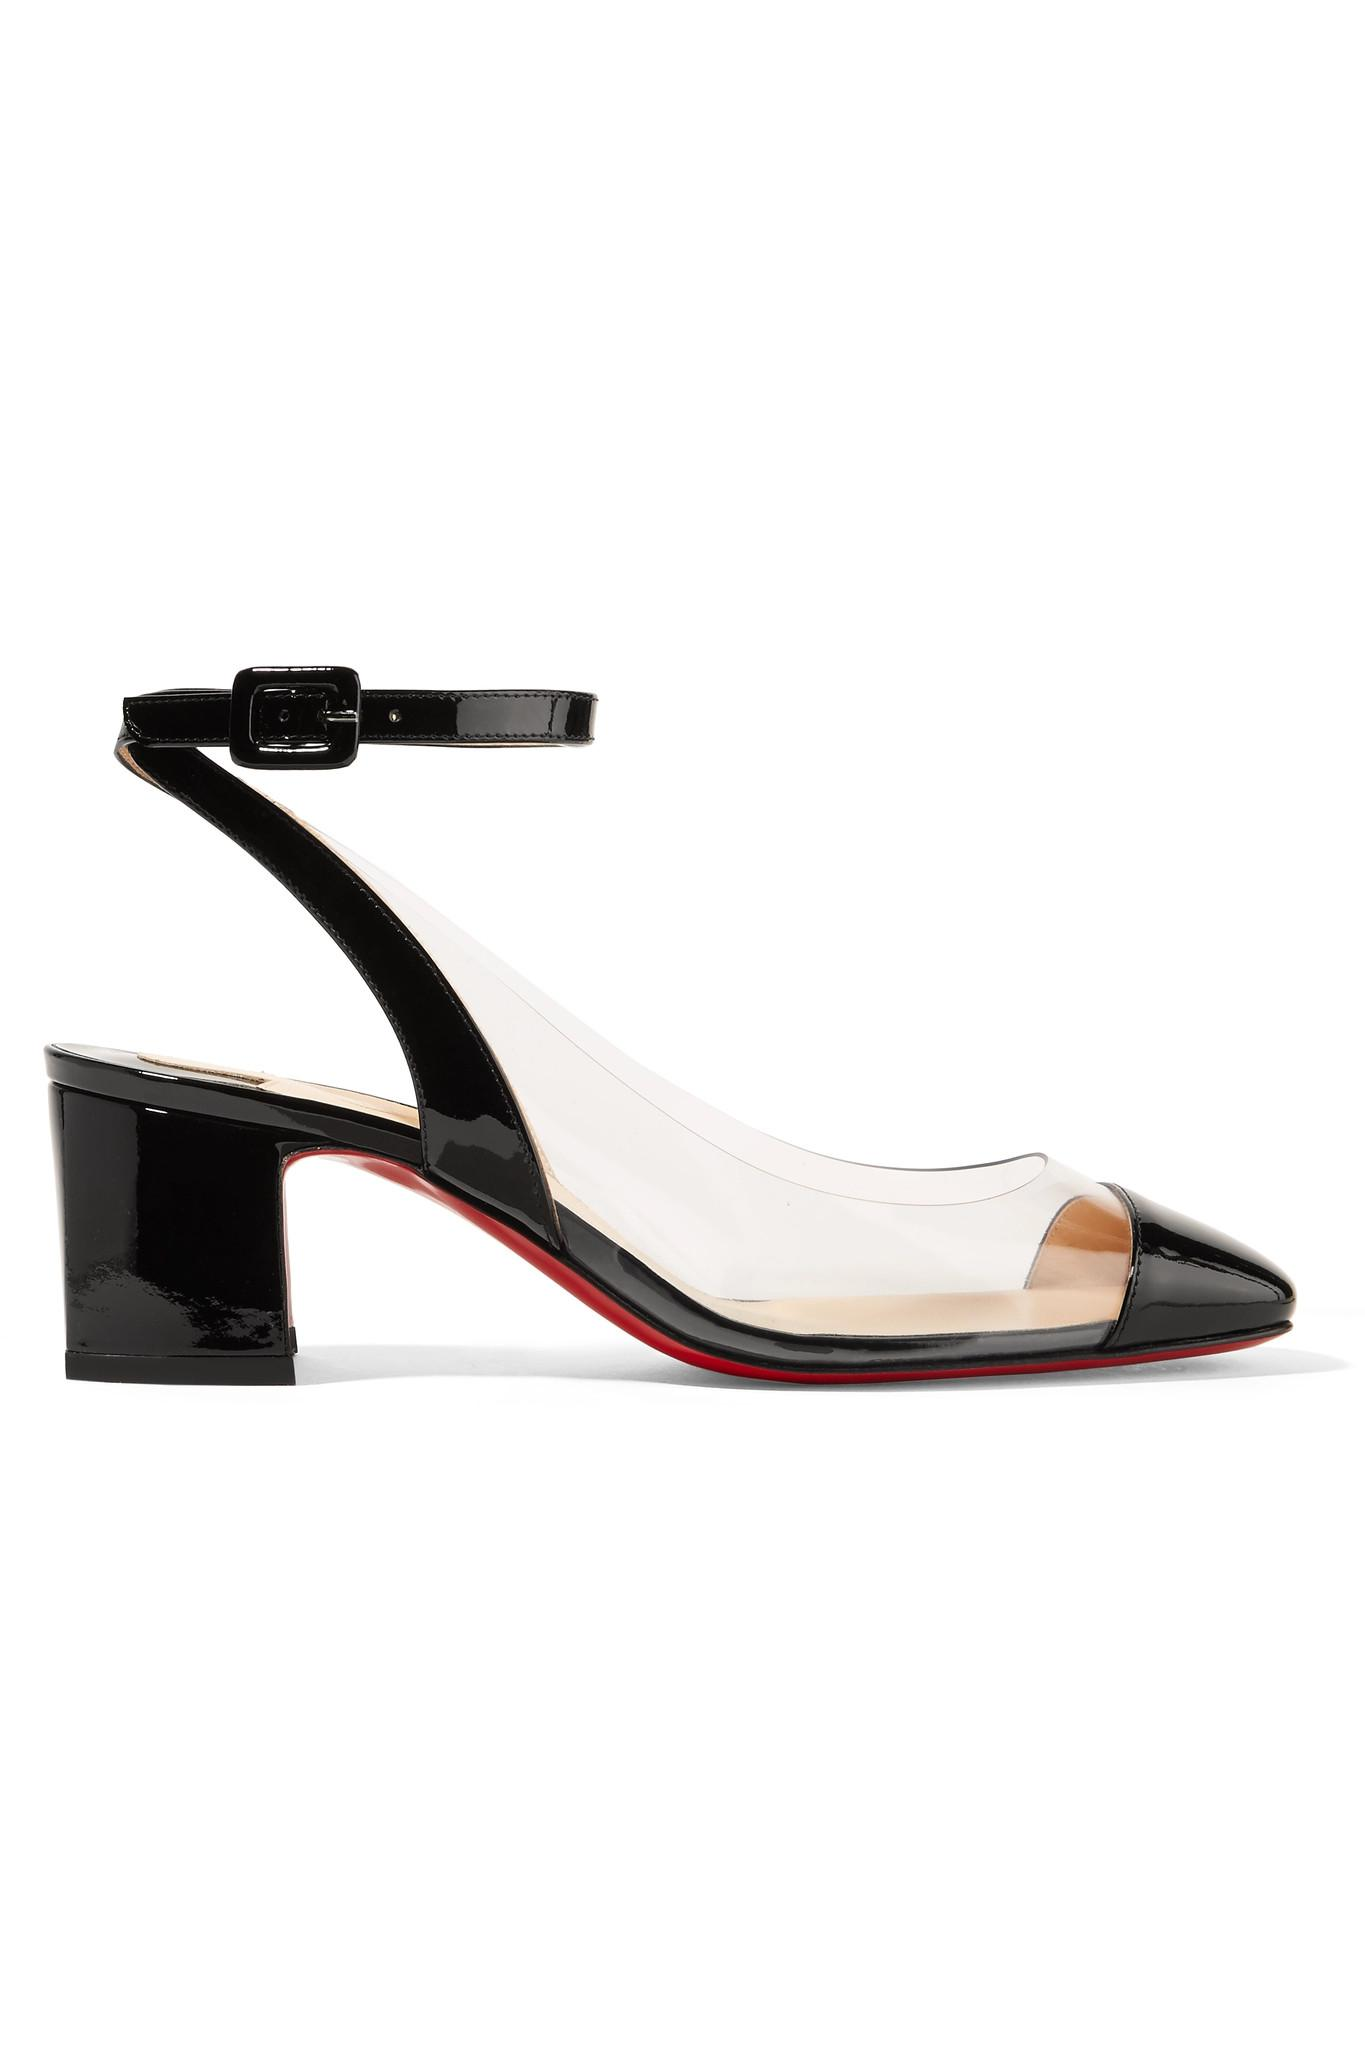 f42eec138547 Lyst - Christian Louboutin Asticocotte 55 Patent-leather And Pvc ...